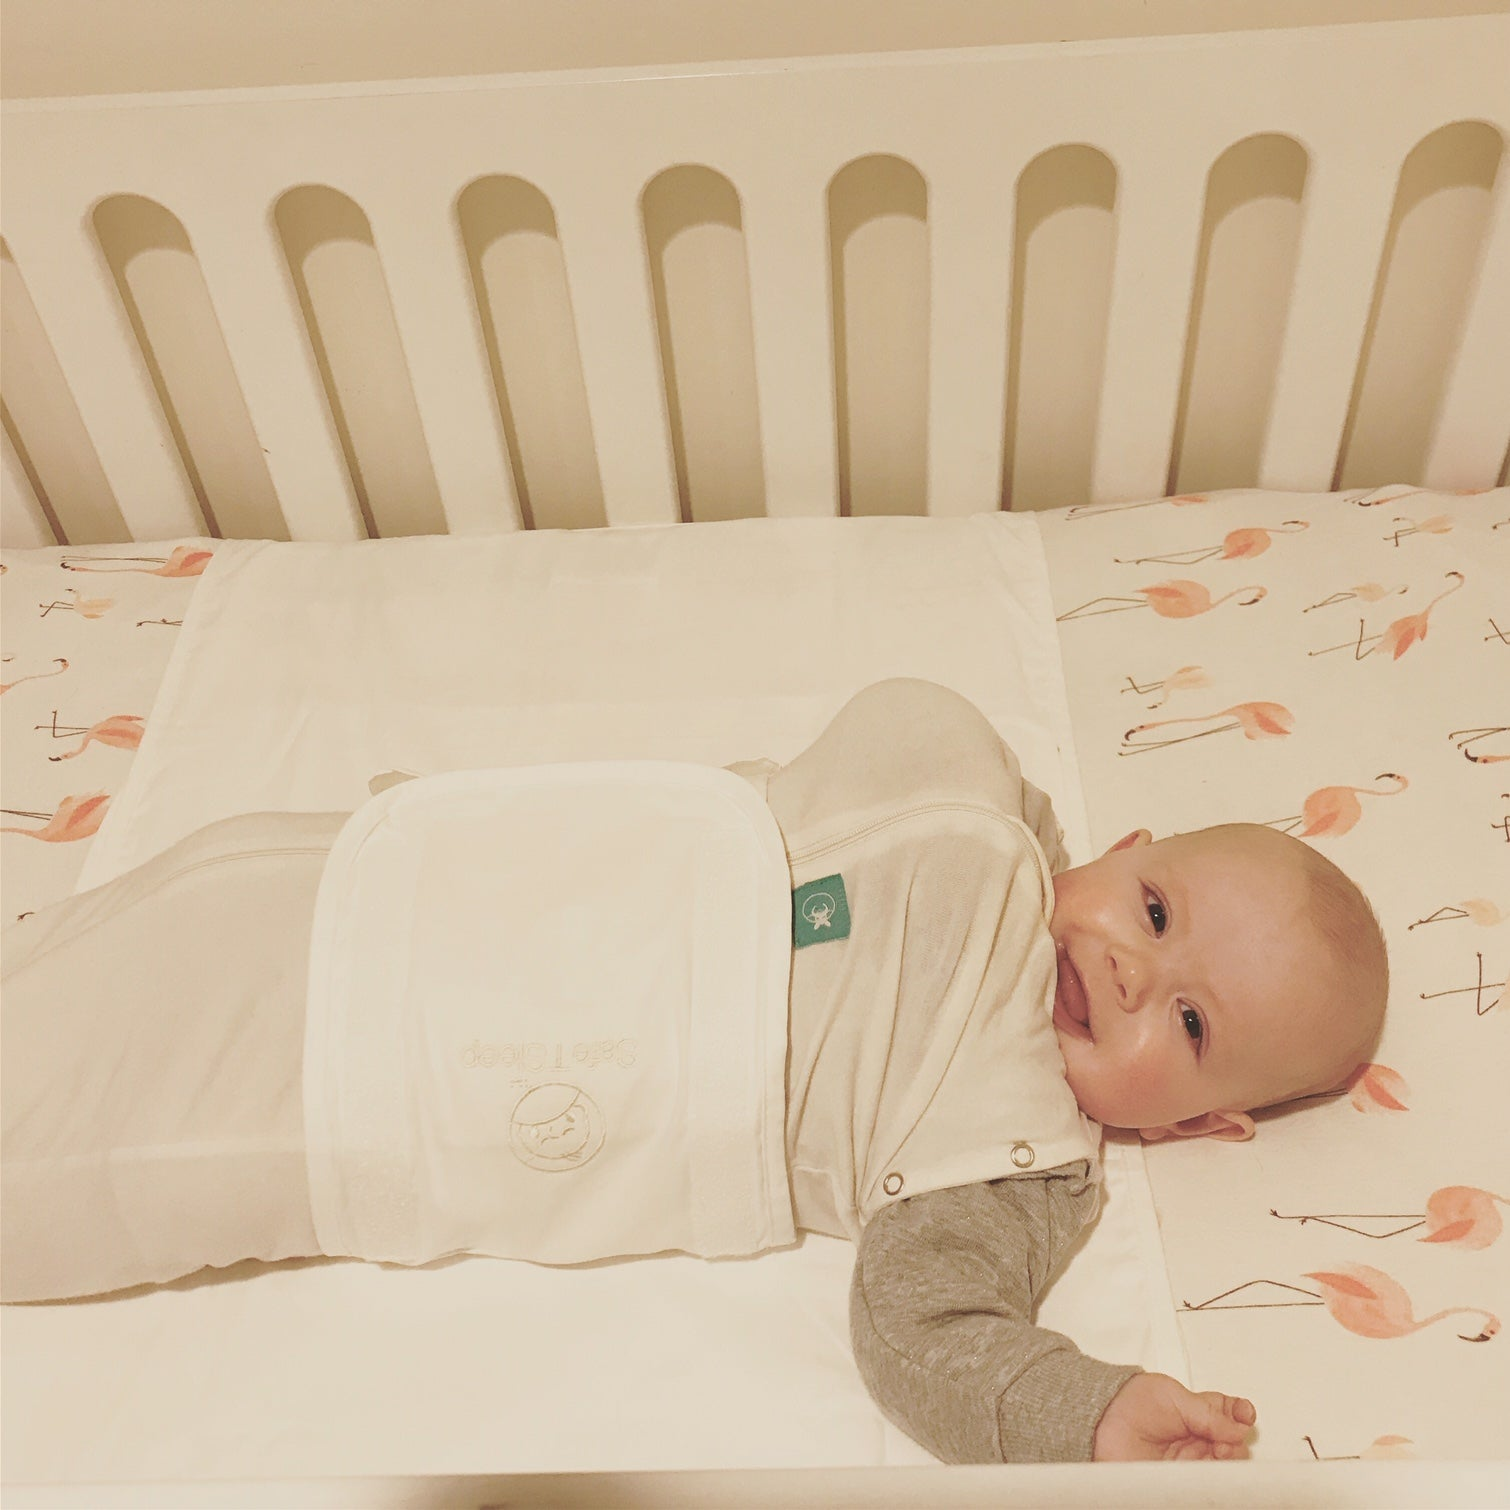 Sleepwrap baby swaddle on a cot/crib